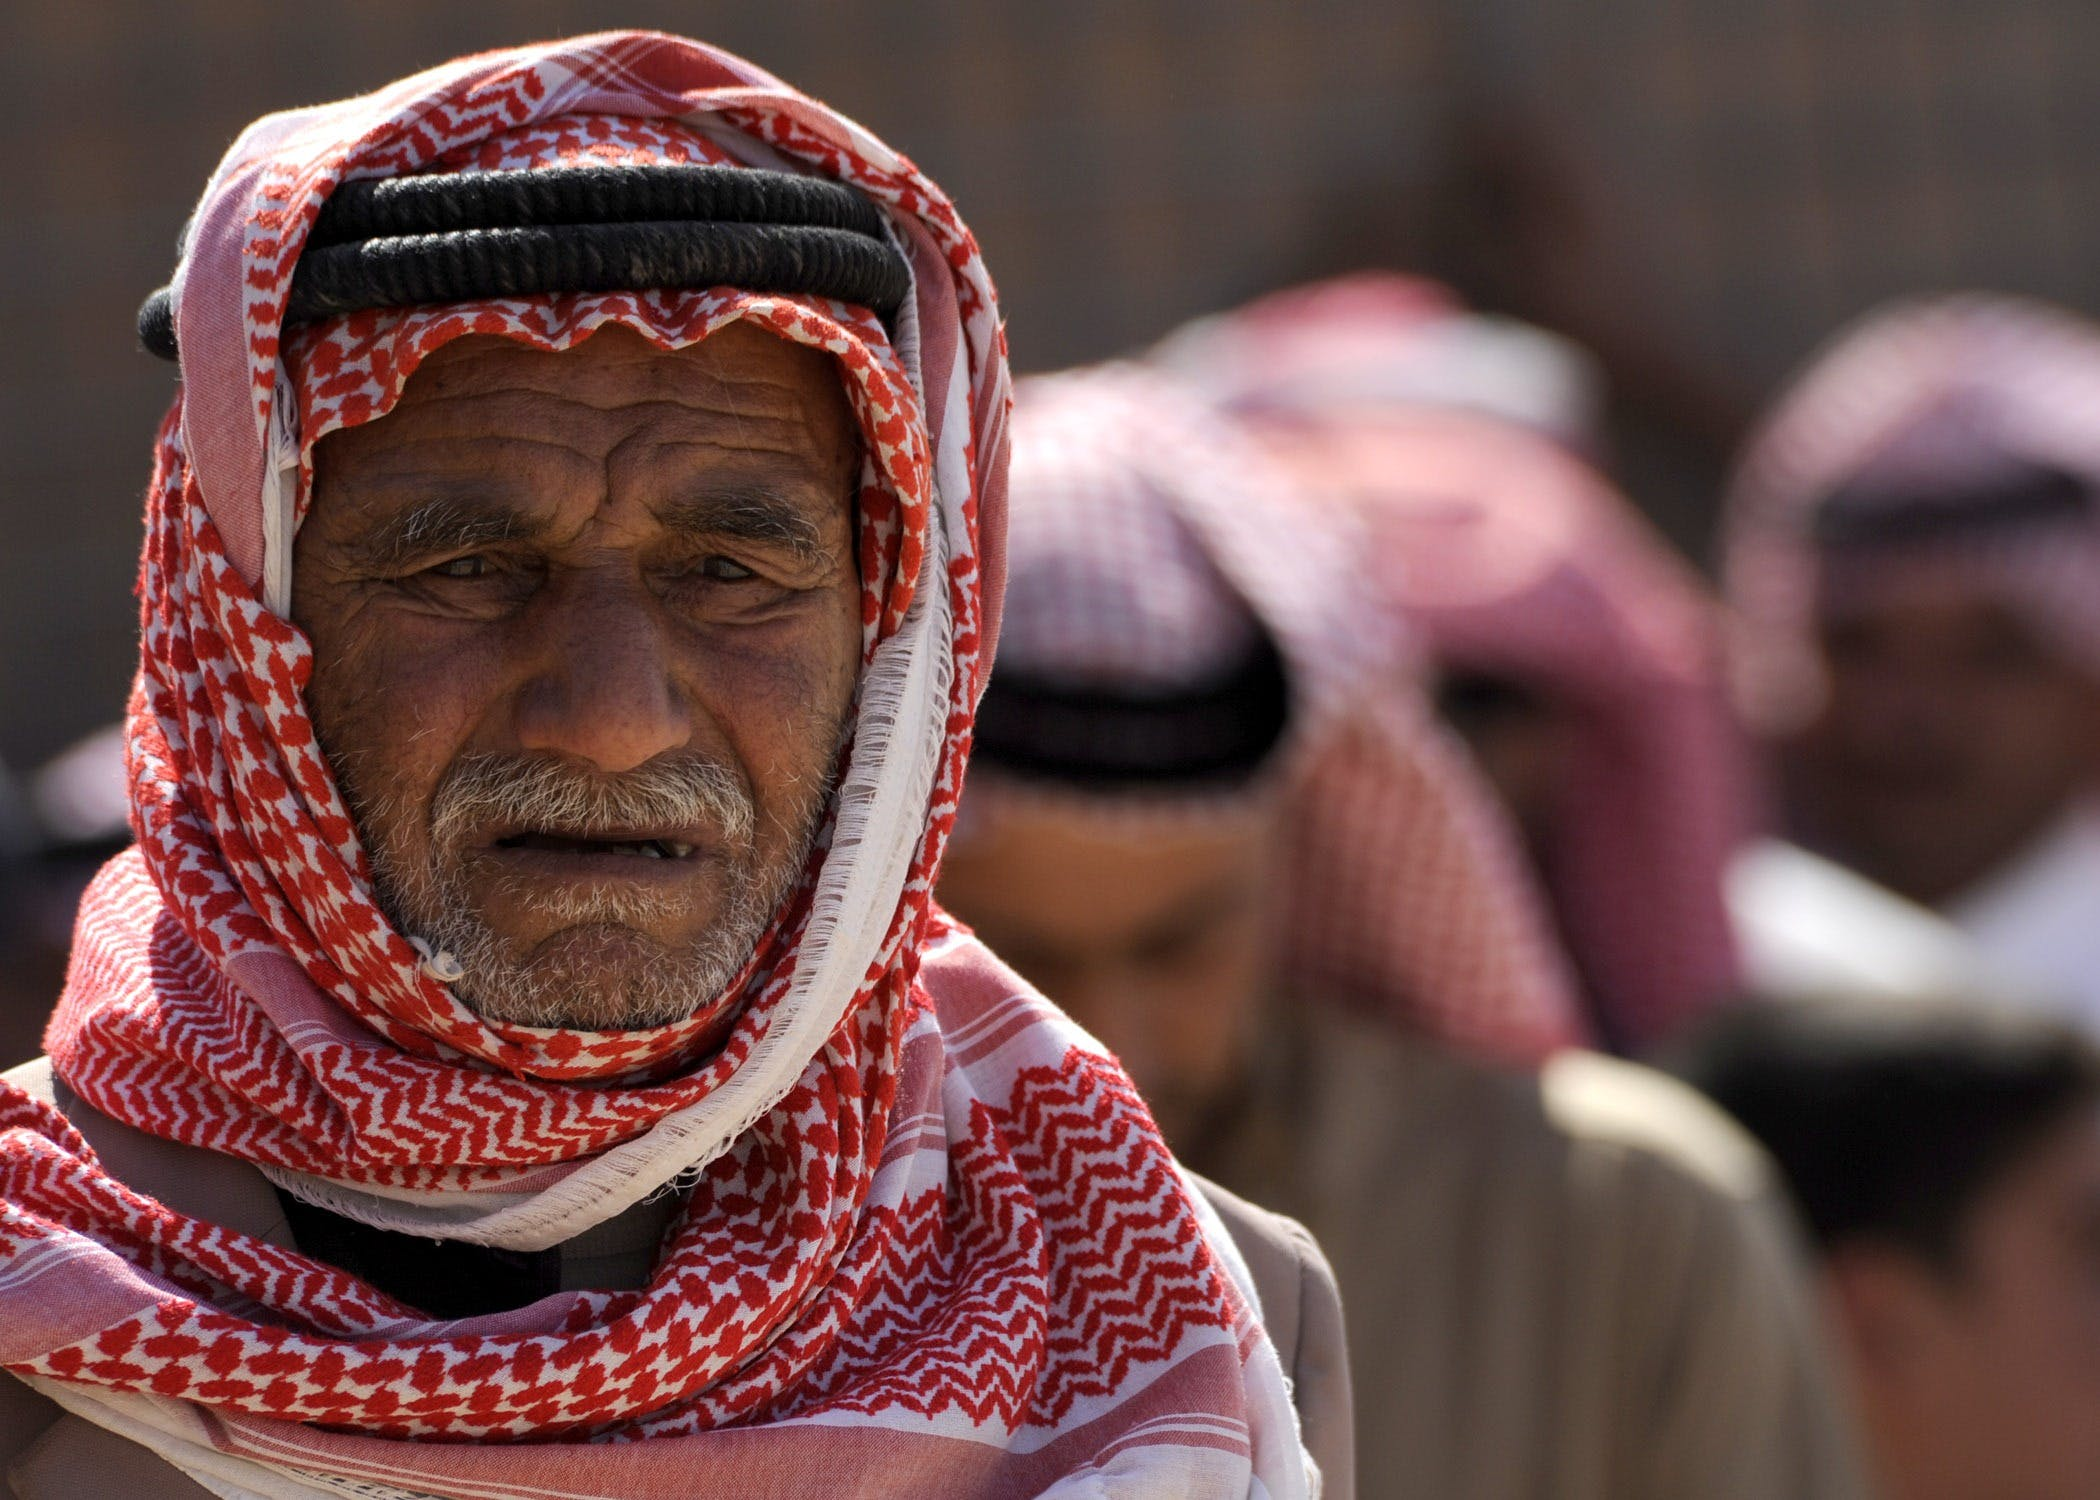 Man Wearing Red White Keffiyeh